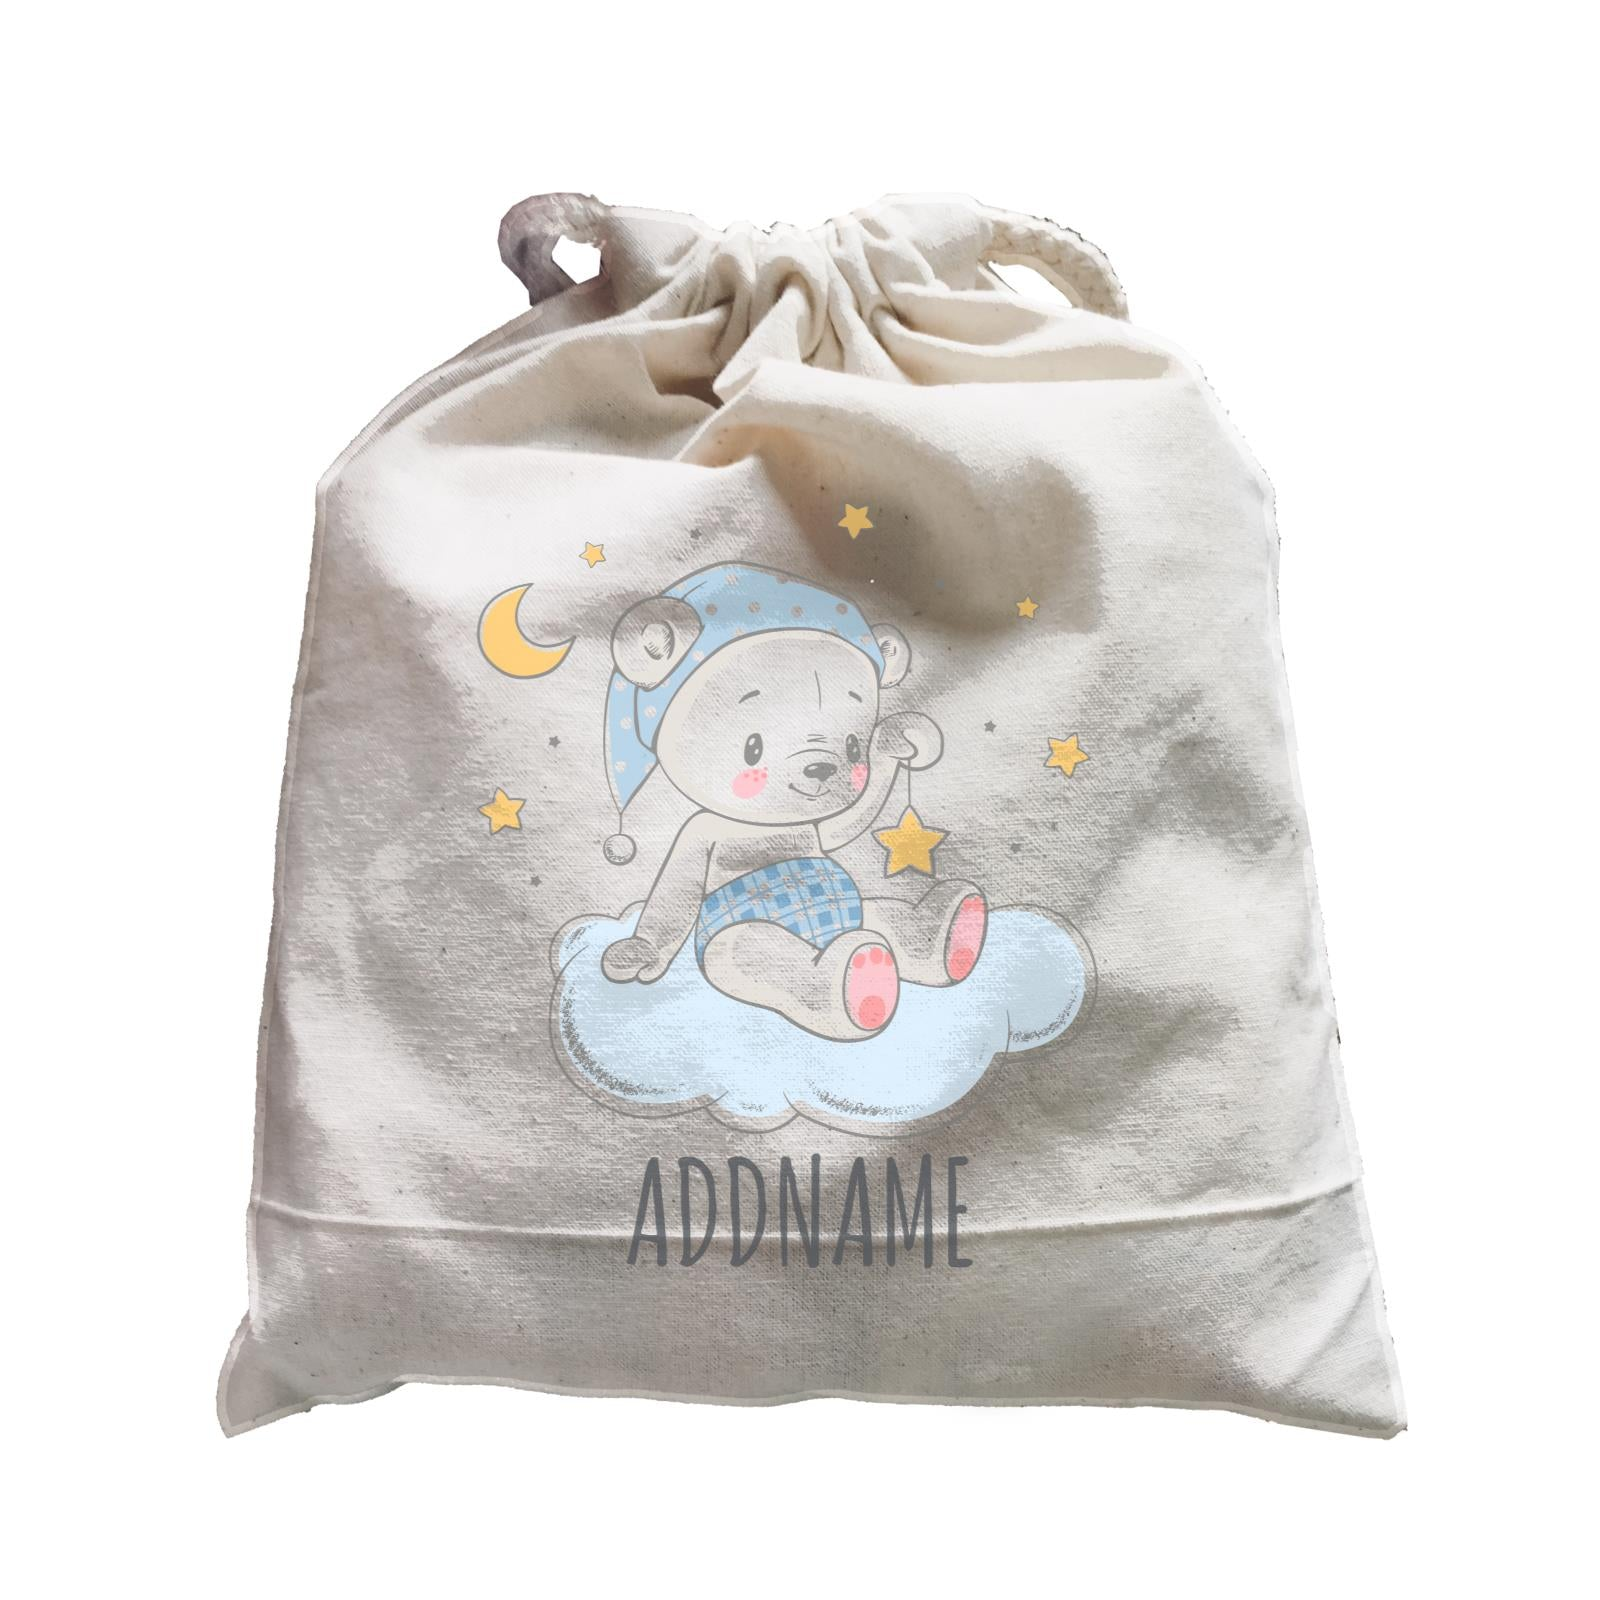 Night Boy Bear Sitting on Cloud Satchel Personalizable Designs Cute Sweet Animal For Boys Newborn HG